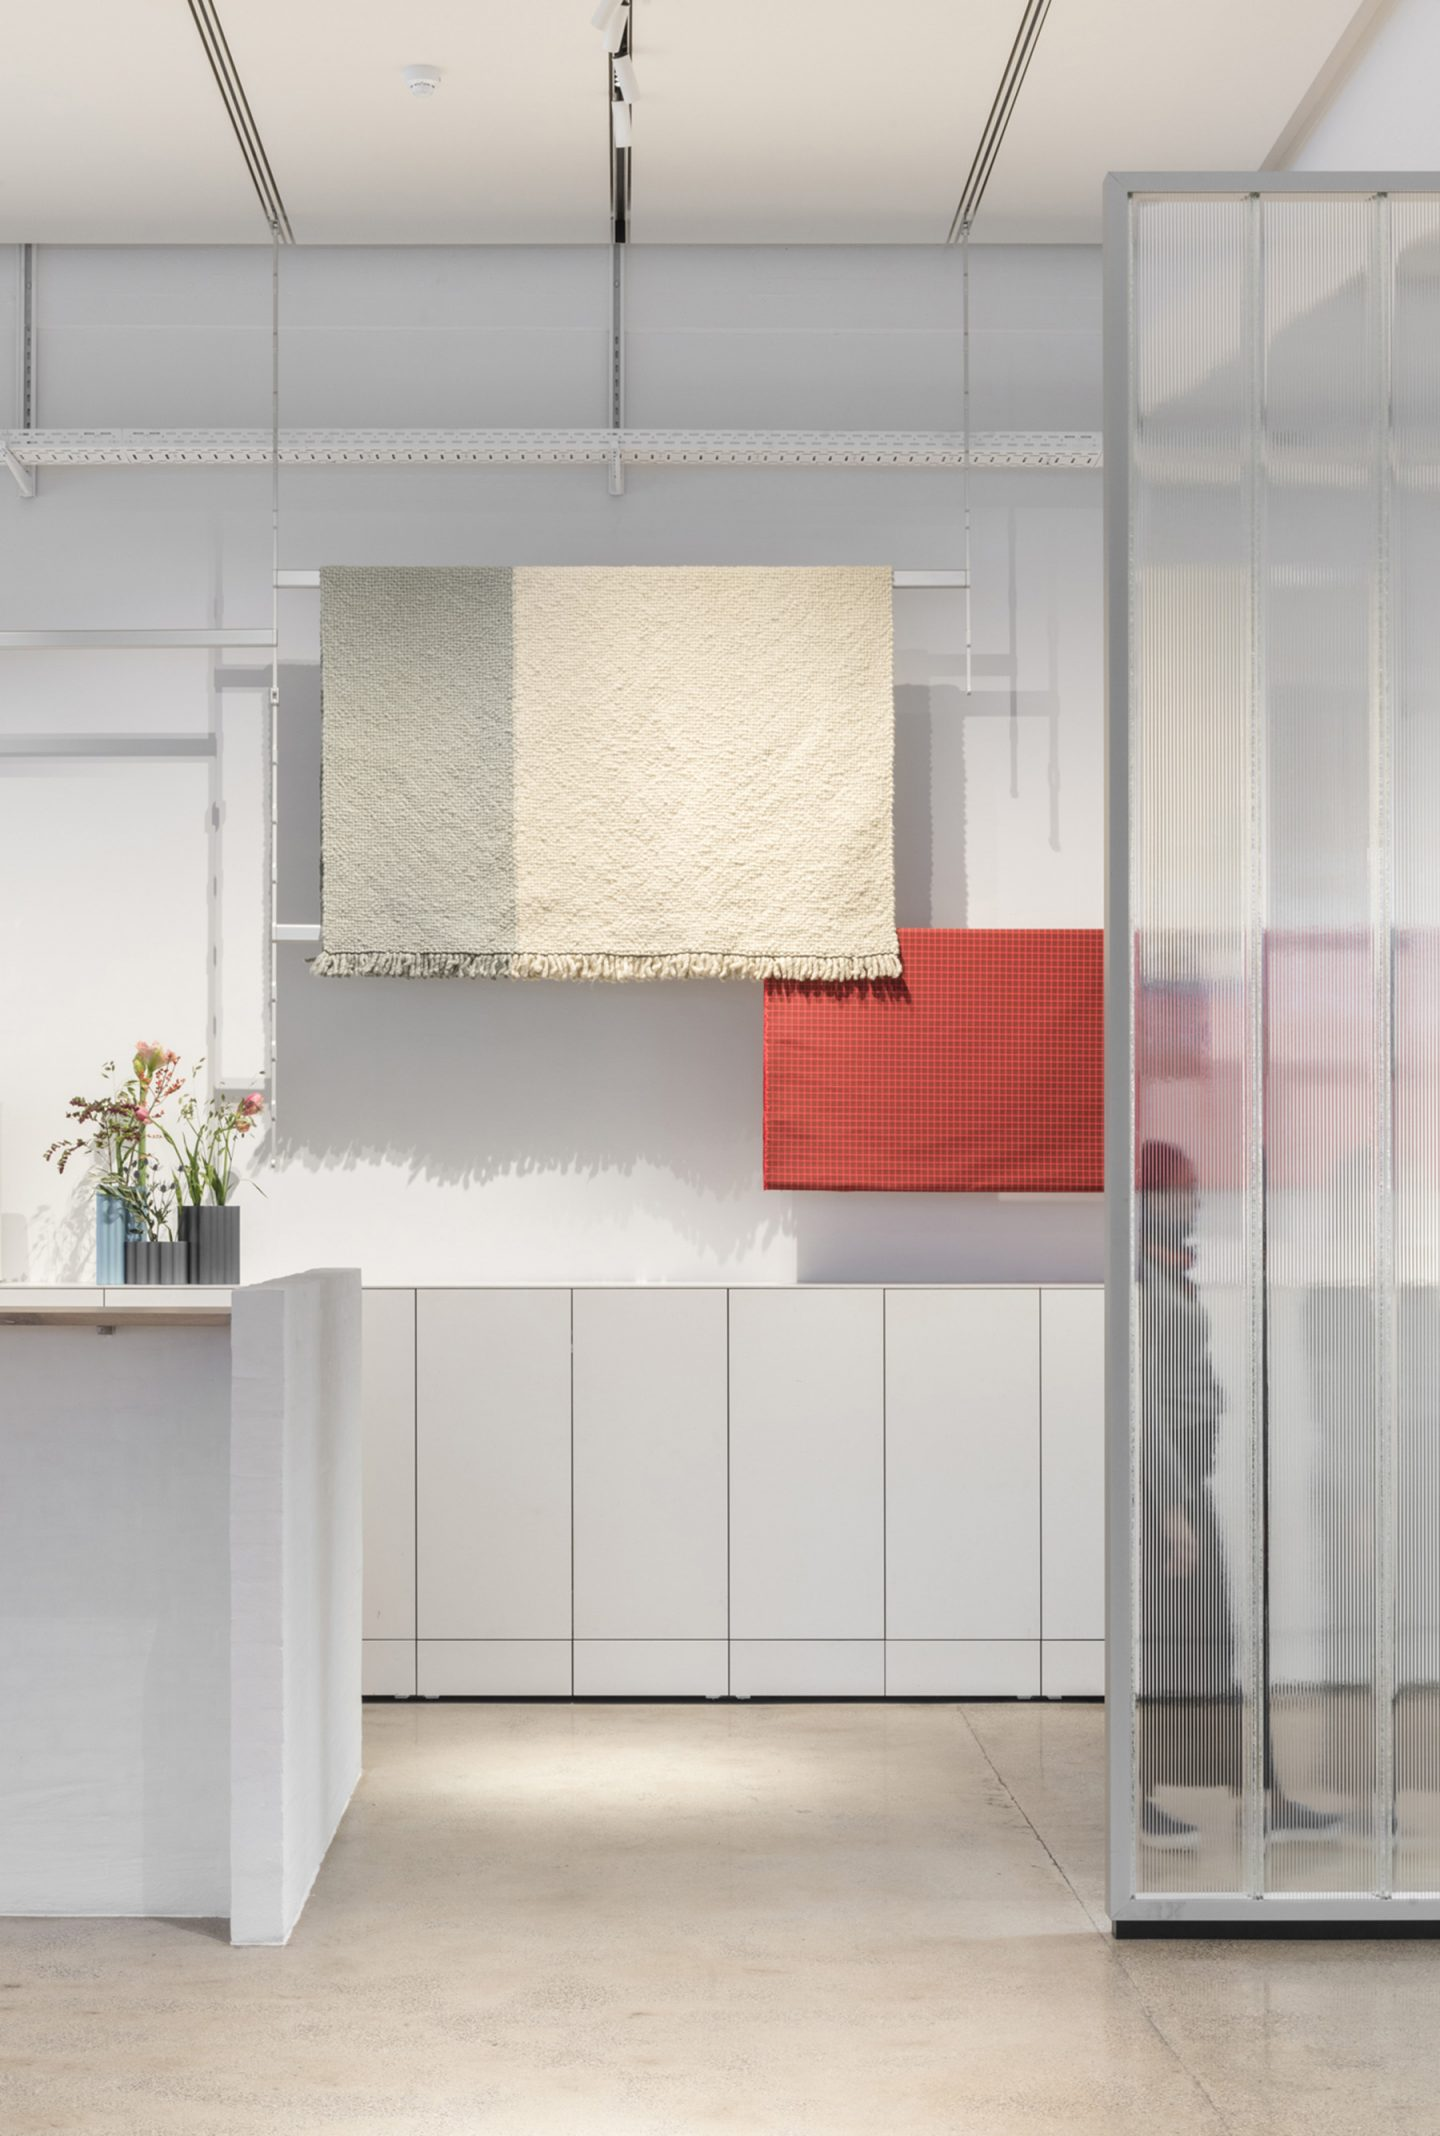 iGNANT-Places-Bouroullec-Studio-Kvadrat-Showroom-Copenhagen-001